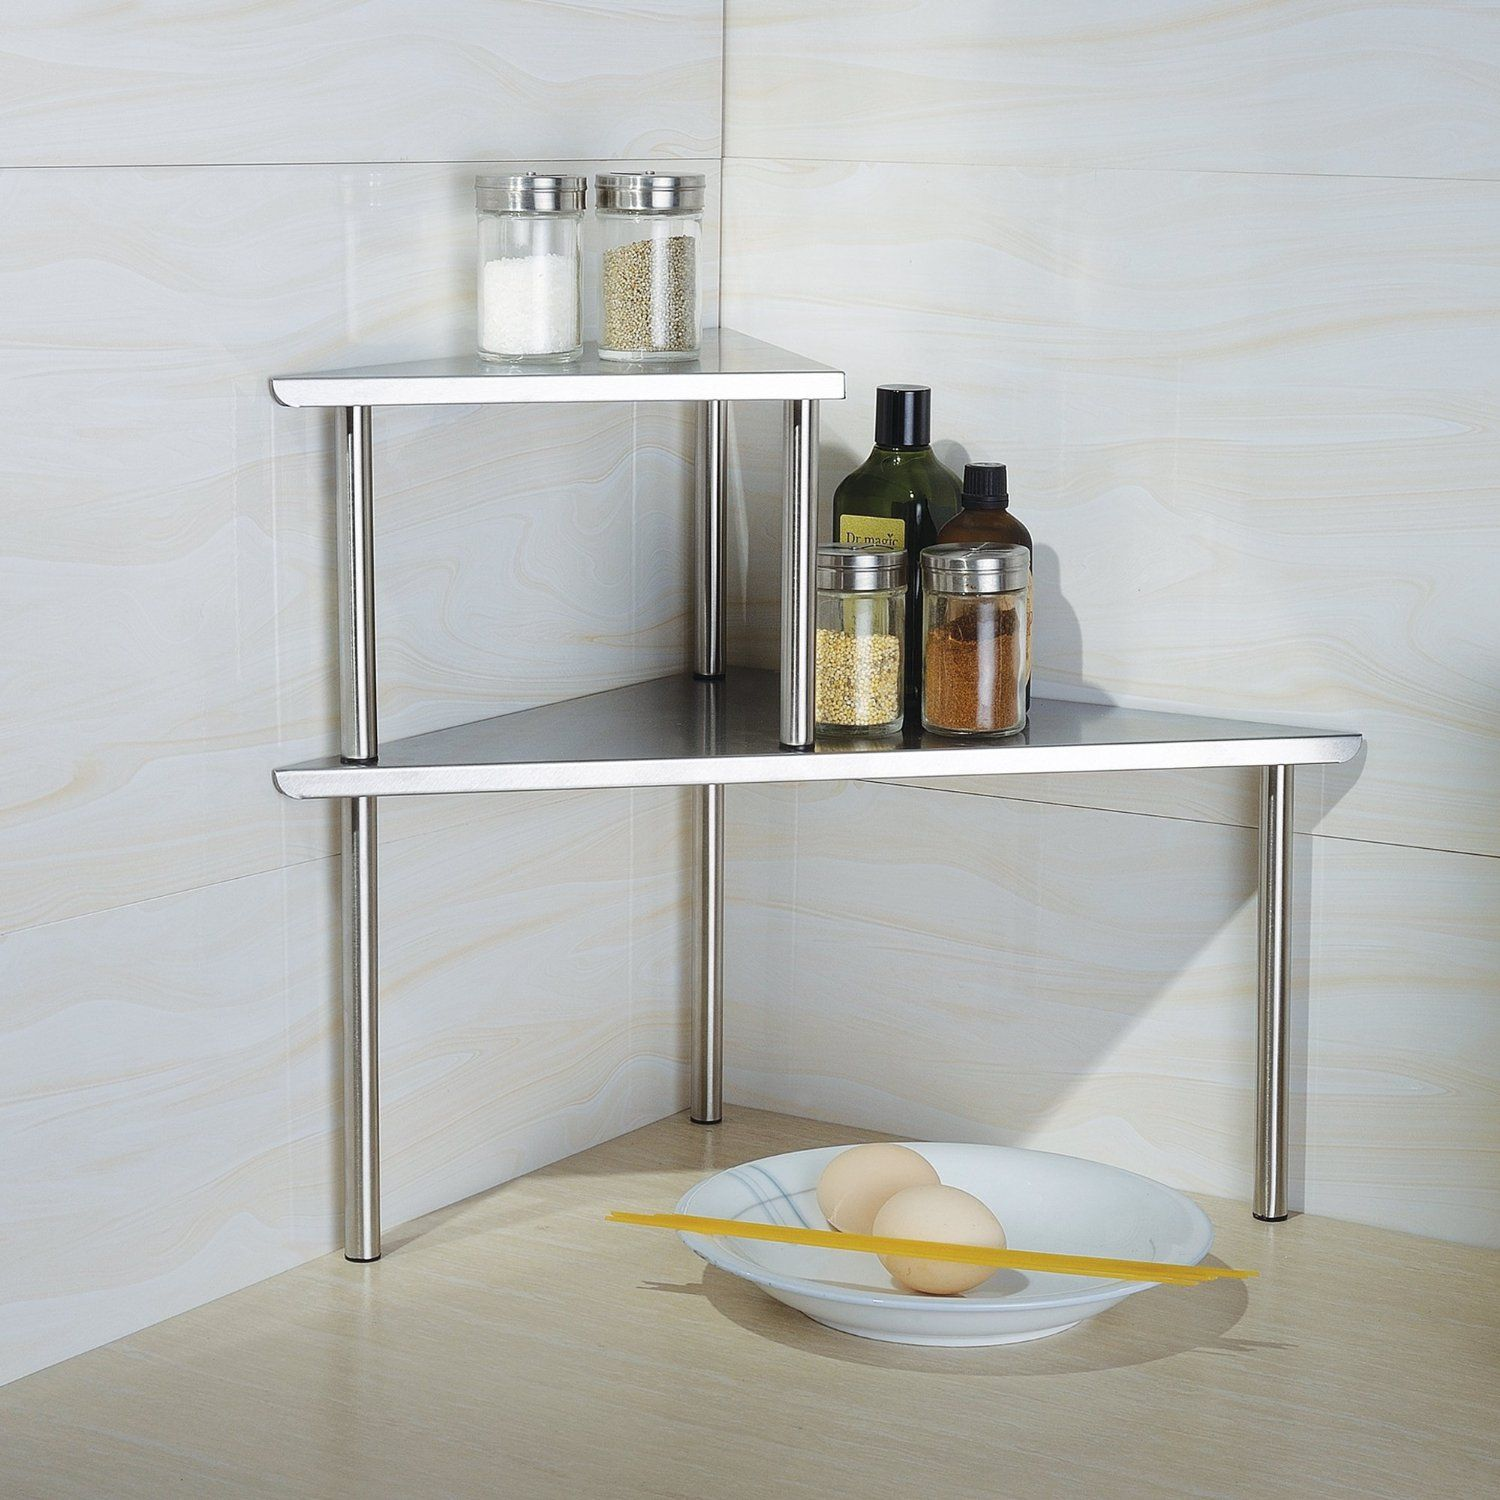 Cook N Home 2 Tier Corner Storage Shelf Stainless Steel - Declutter your kitchen with these 10 space-saving ideas